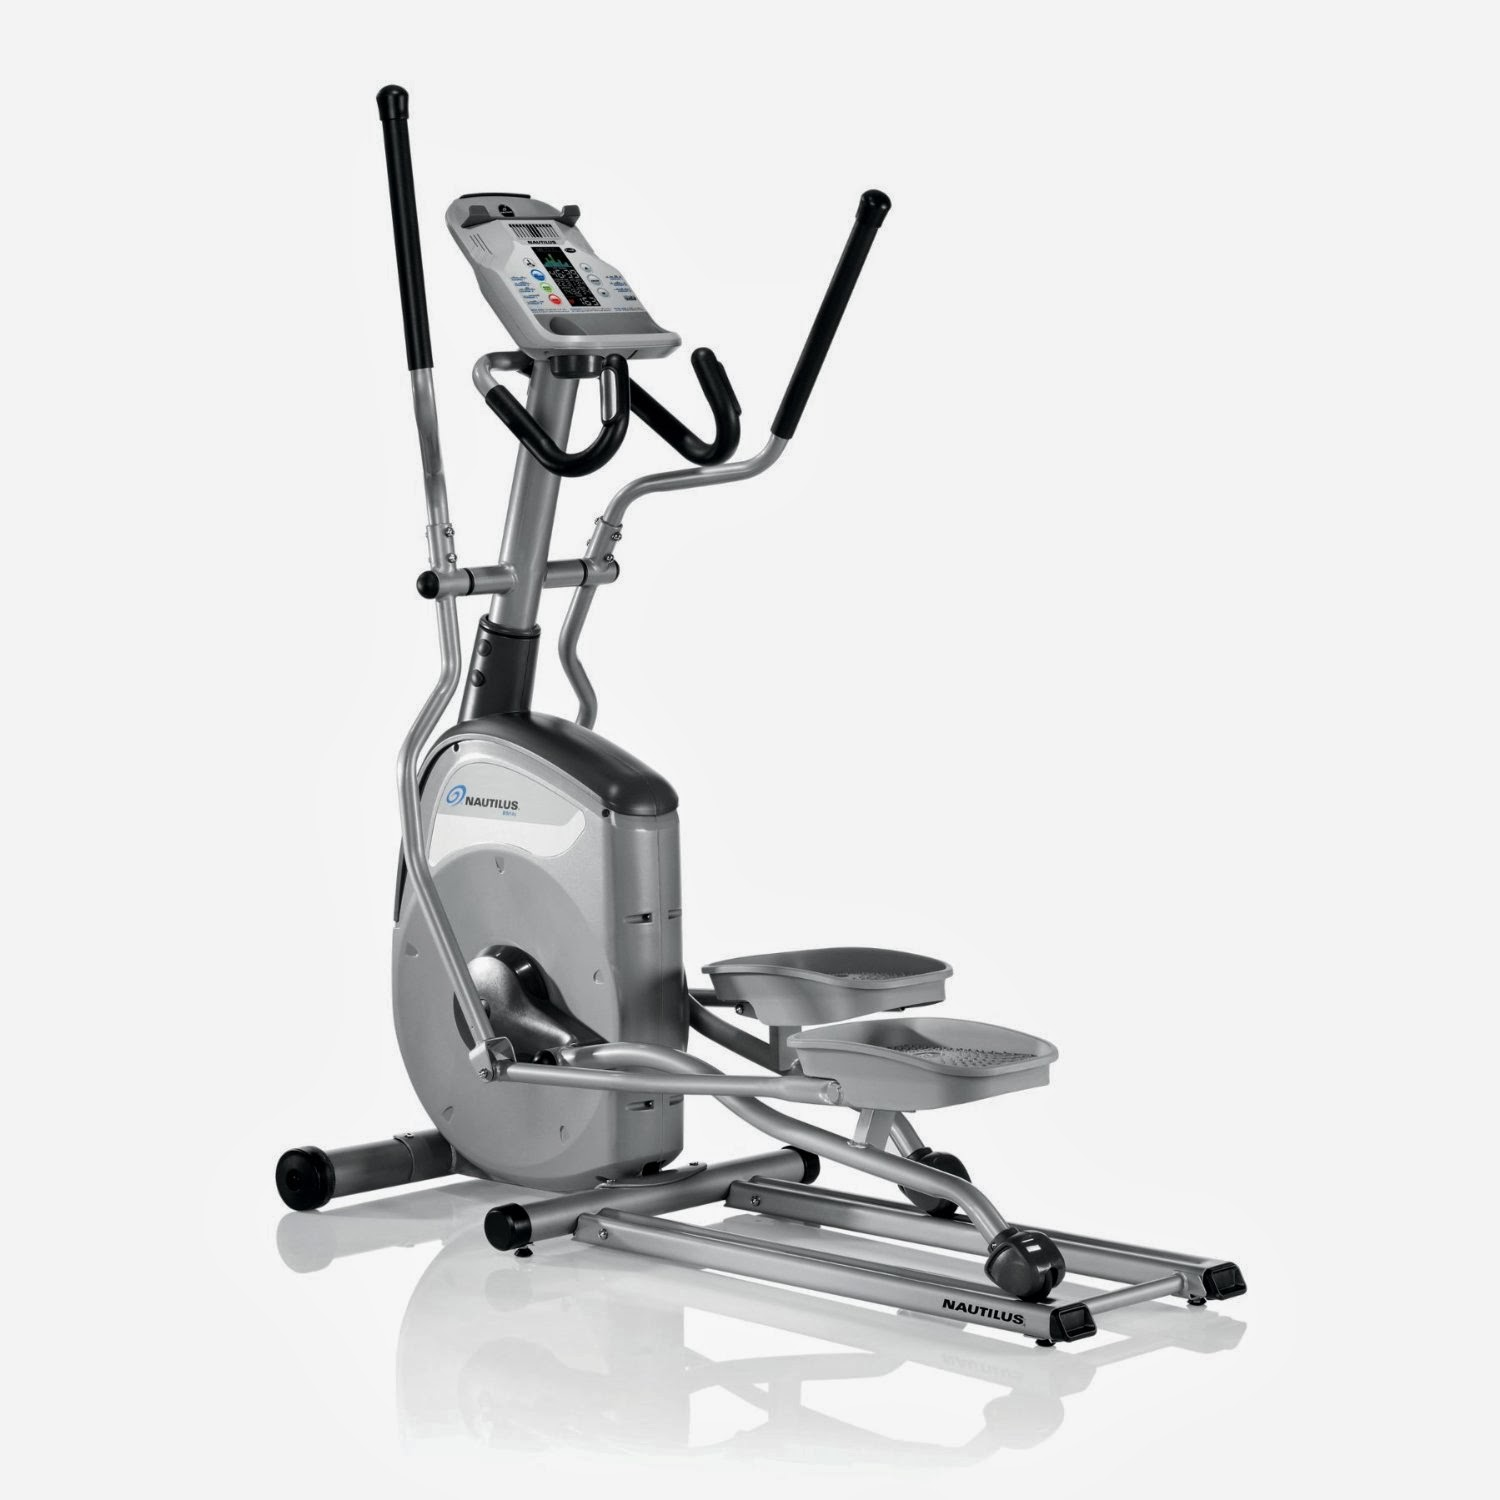 Nautilus E514c Elliptical Trainer, picture, review features & specifications